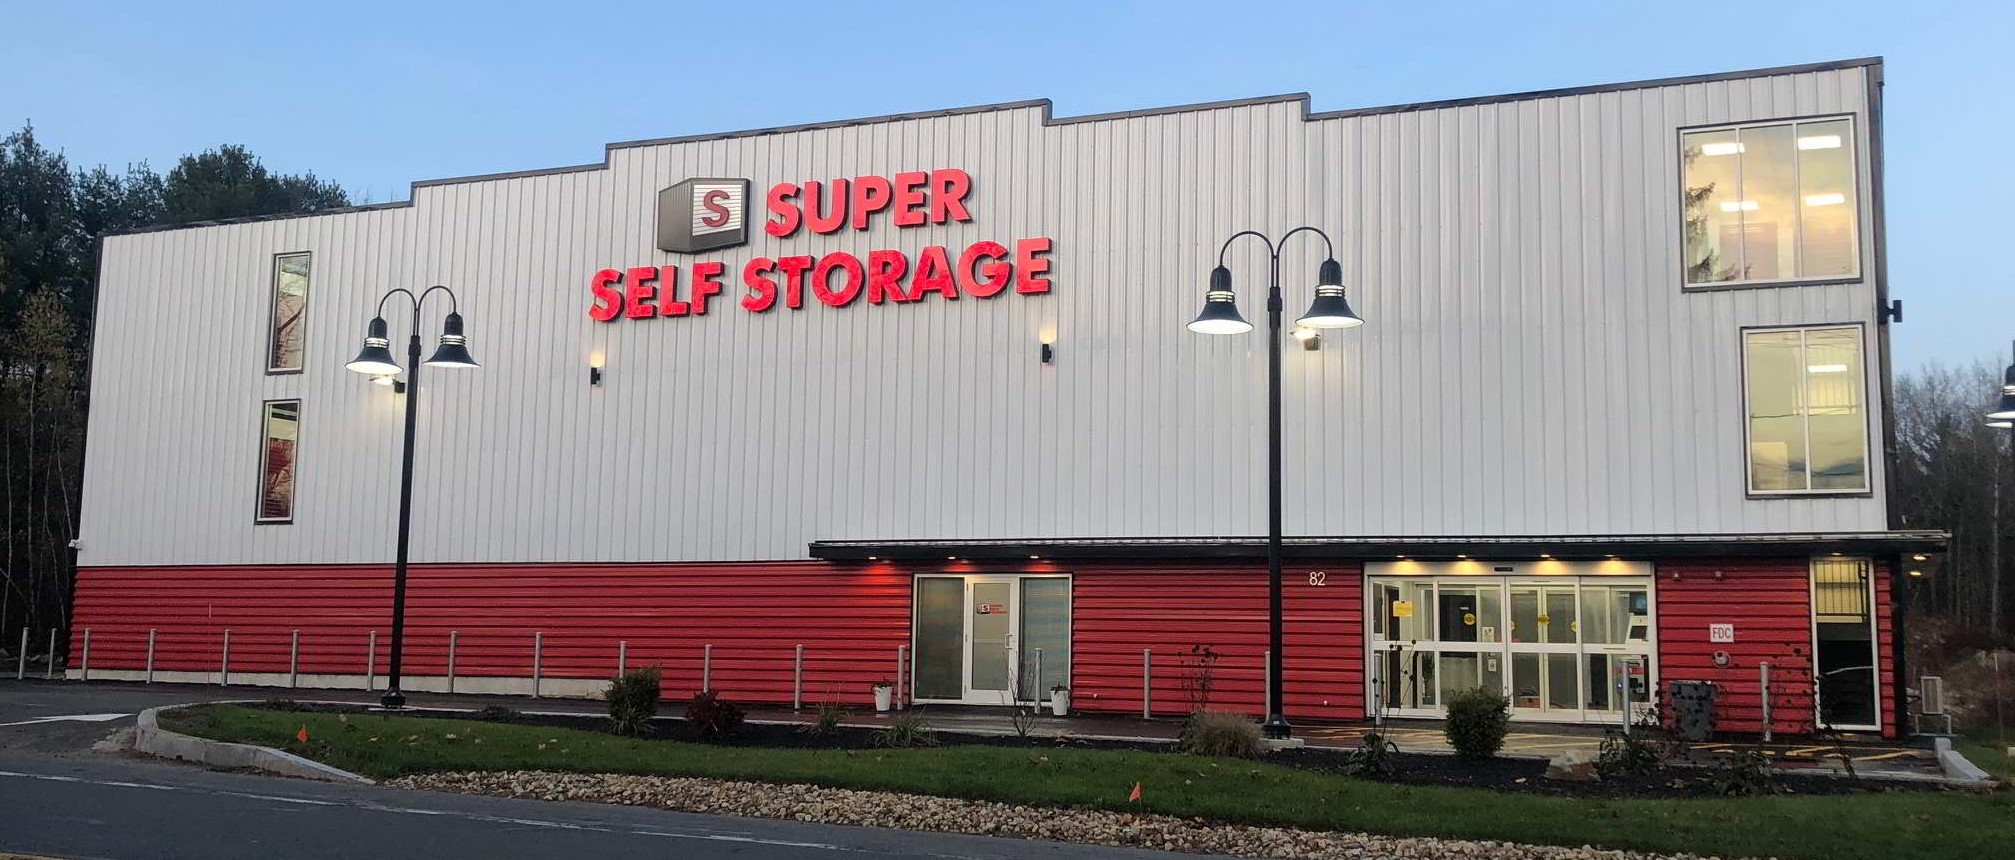 Storage property exterior